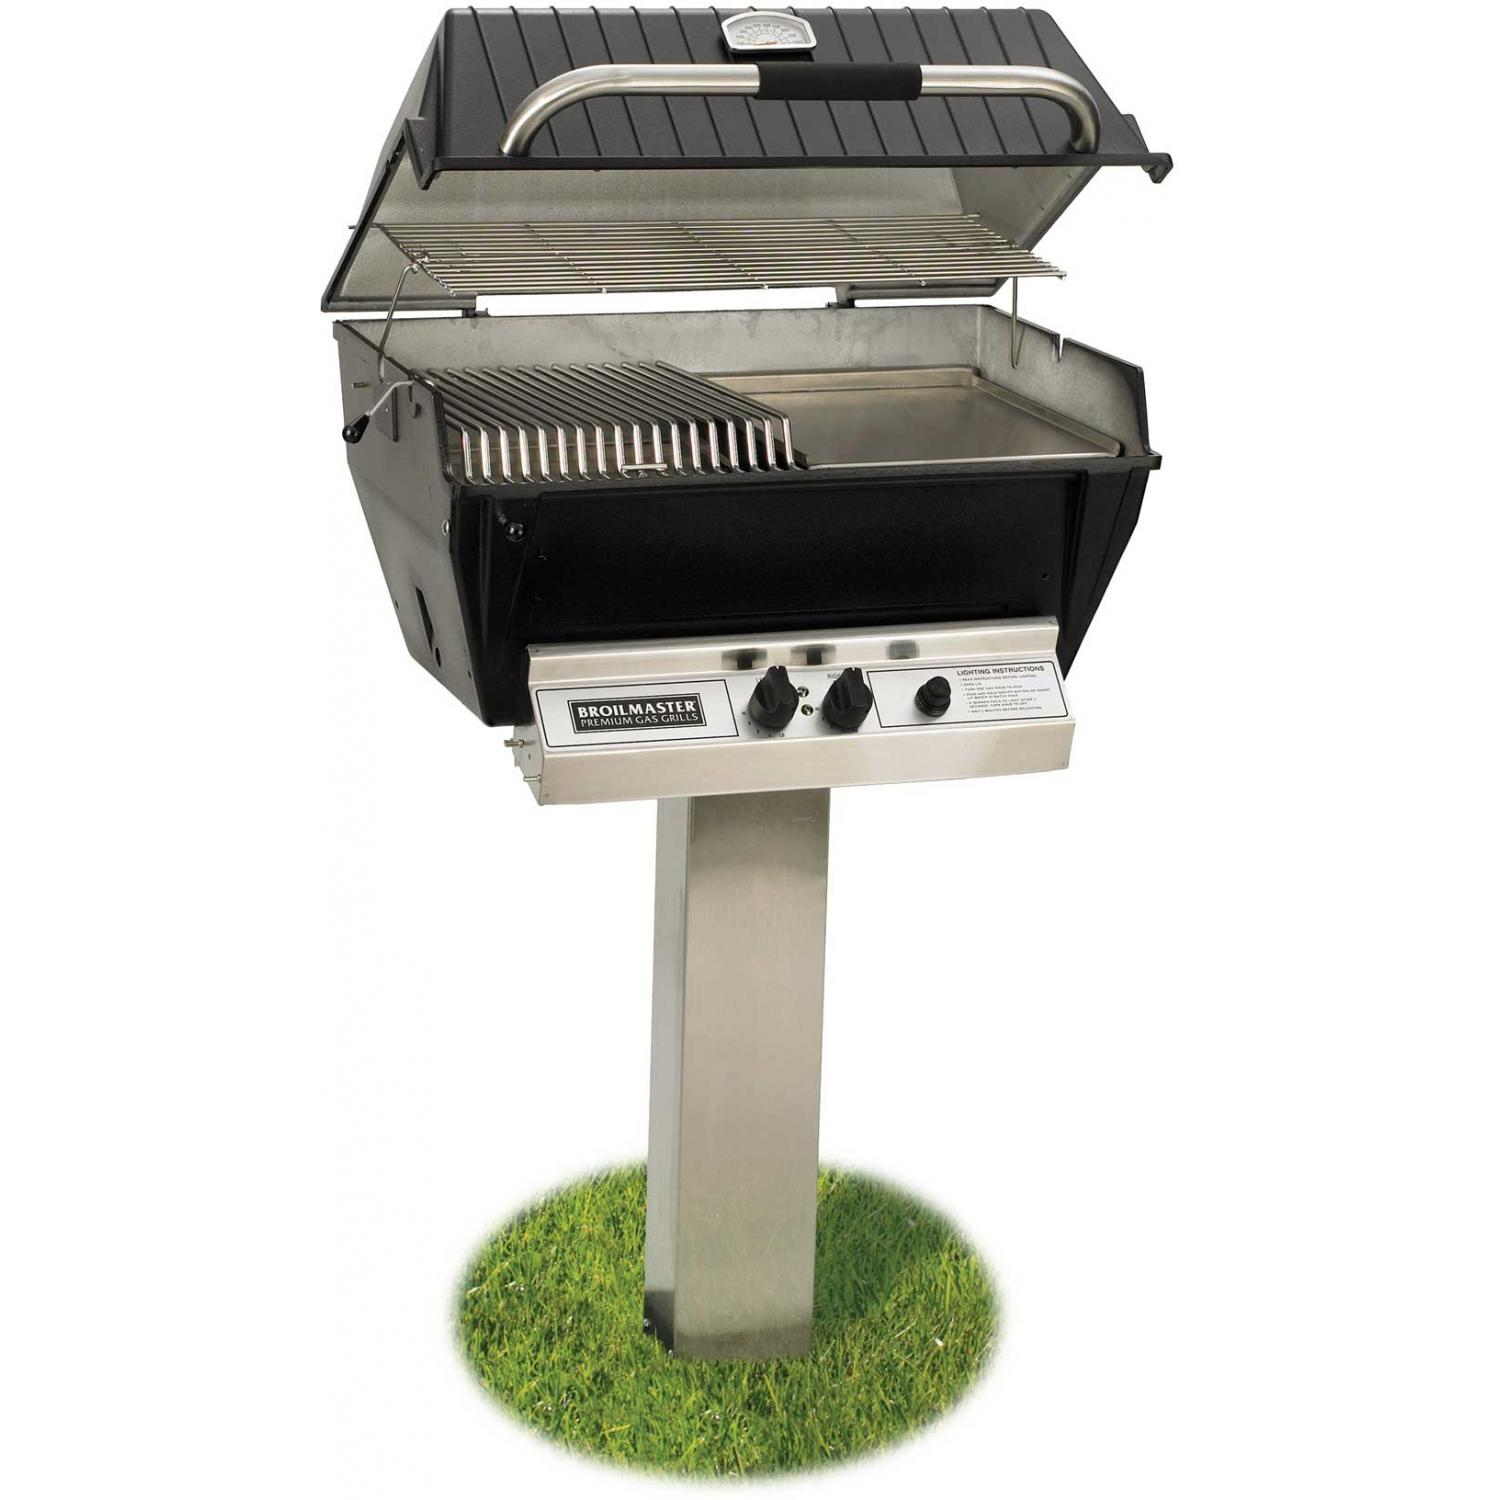 Broilmaster P3-SX Super Premium Propane Gas Grill On Stainless Steel In-Ground Post 2824426